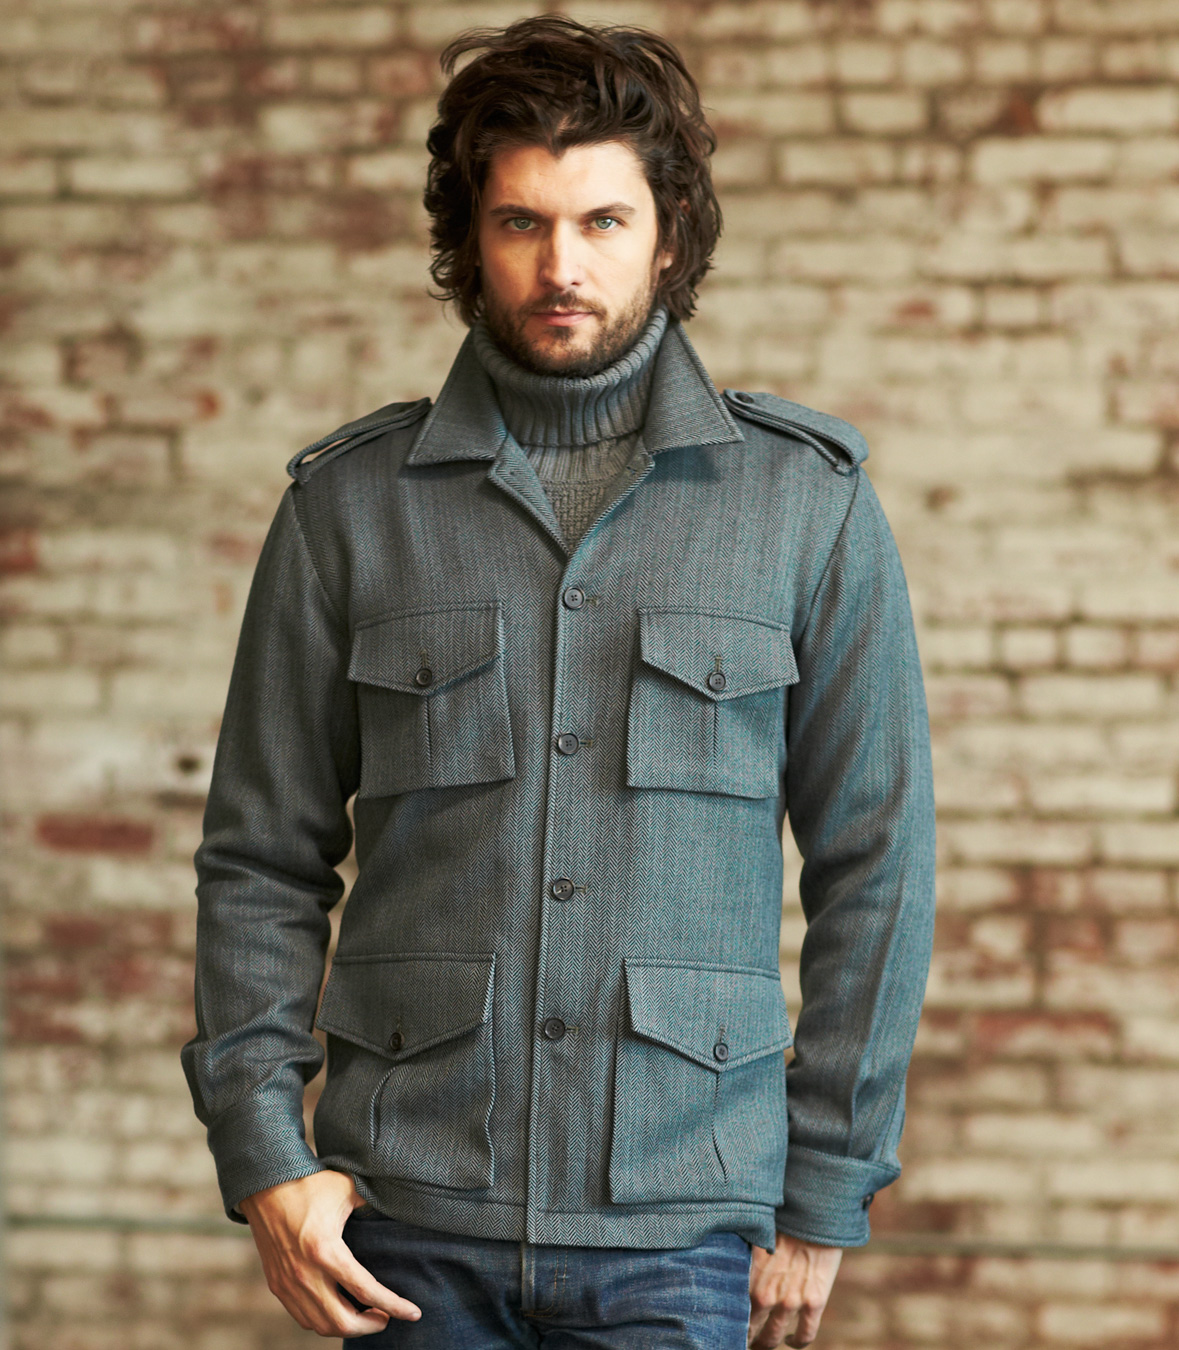 Men's 100% Merino Wool Long Sleeve Field Jacket Made in ...